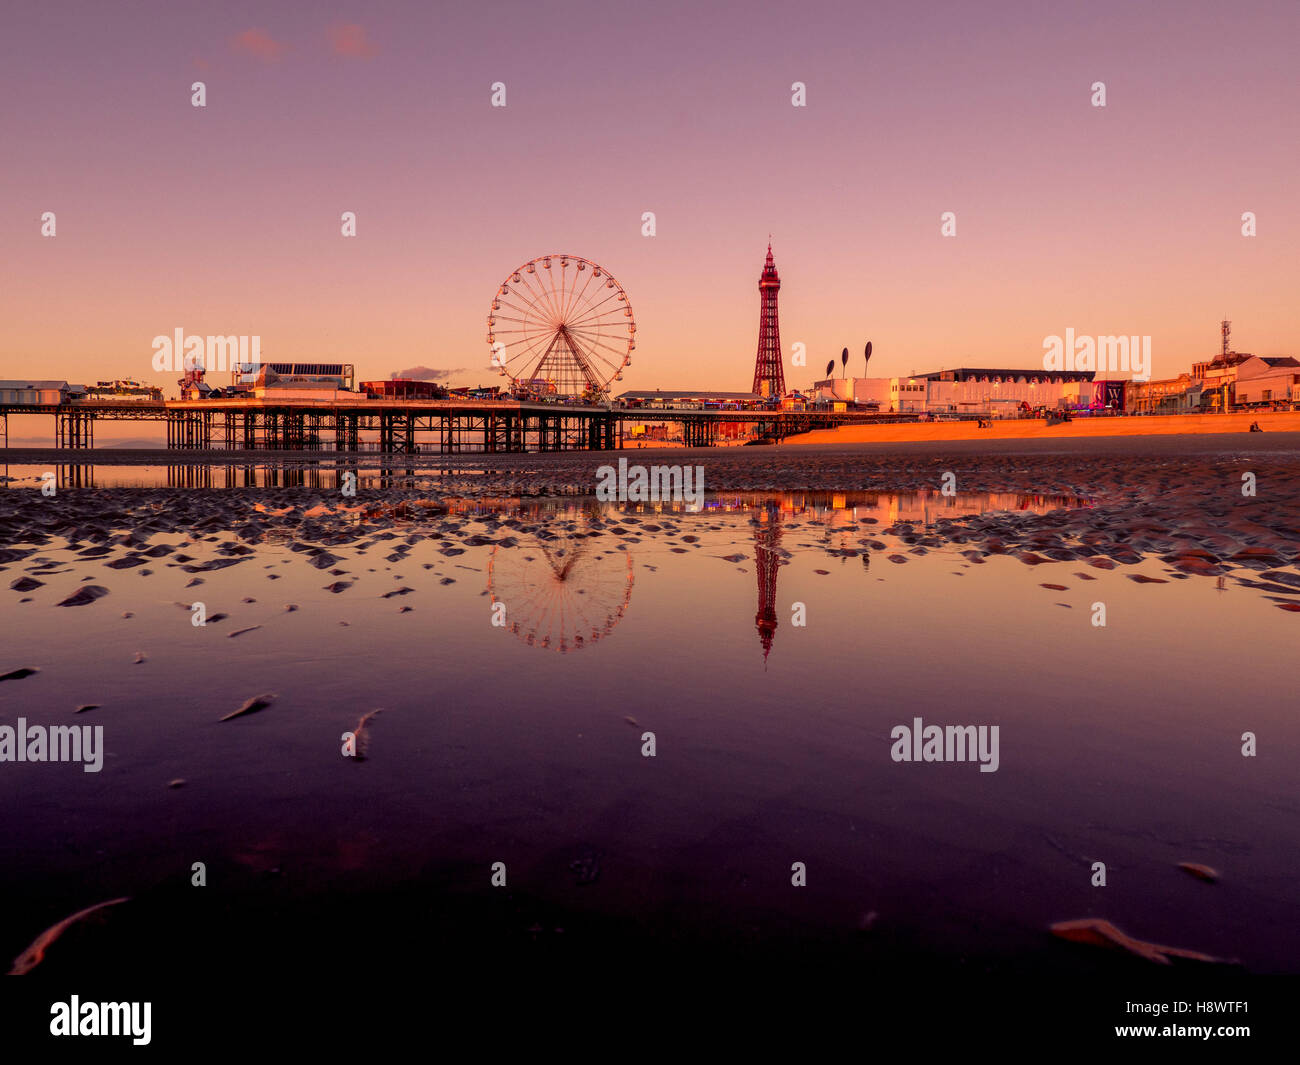 Blackpool Tower and Central Pier with reflection in water on beach at sunset, Lancashire, UK. - Stock Image